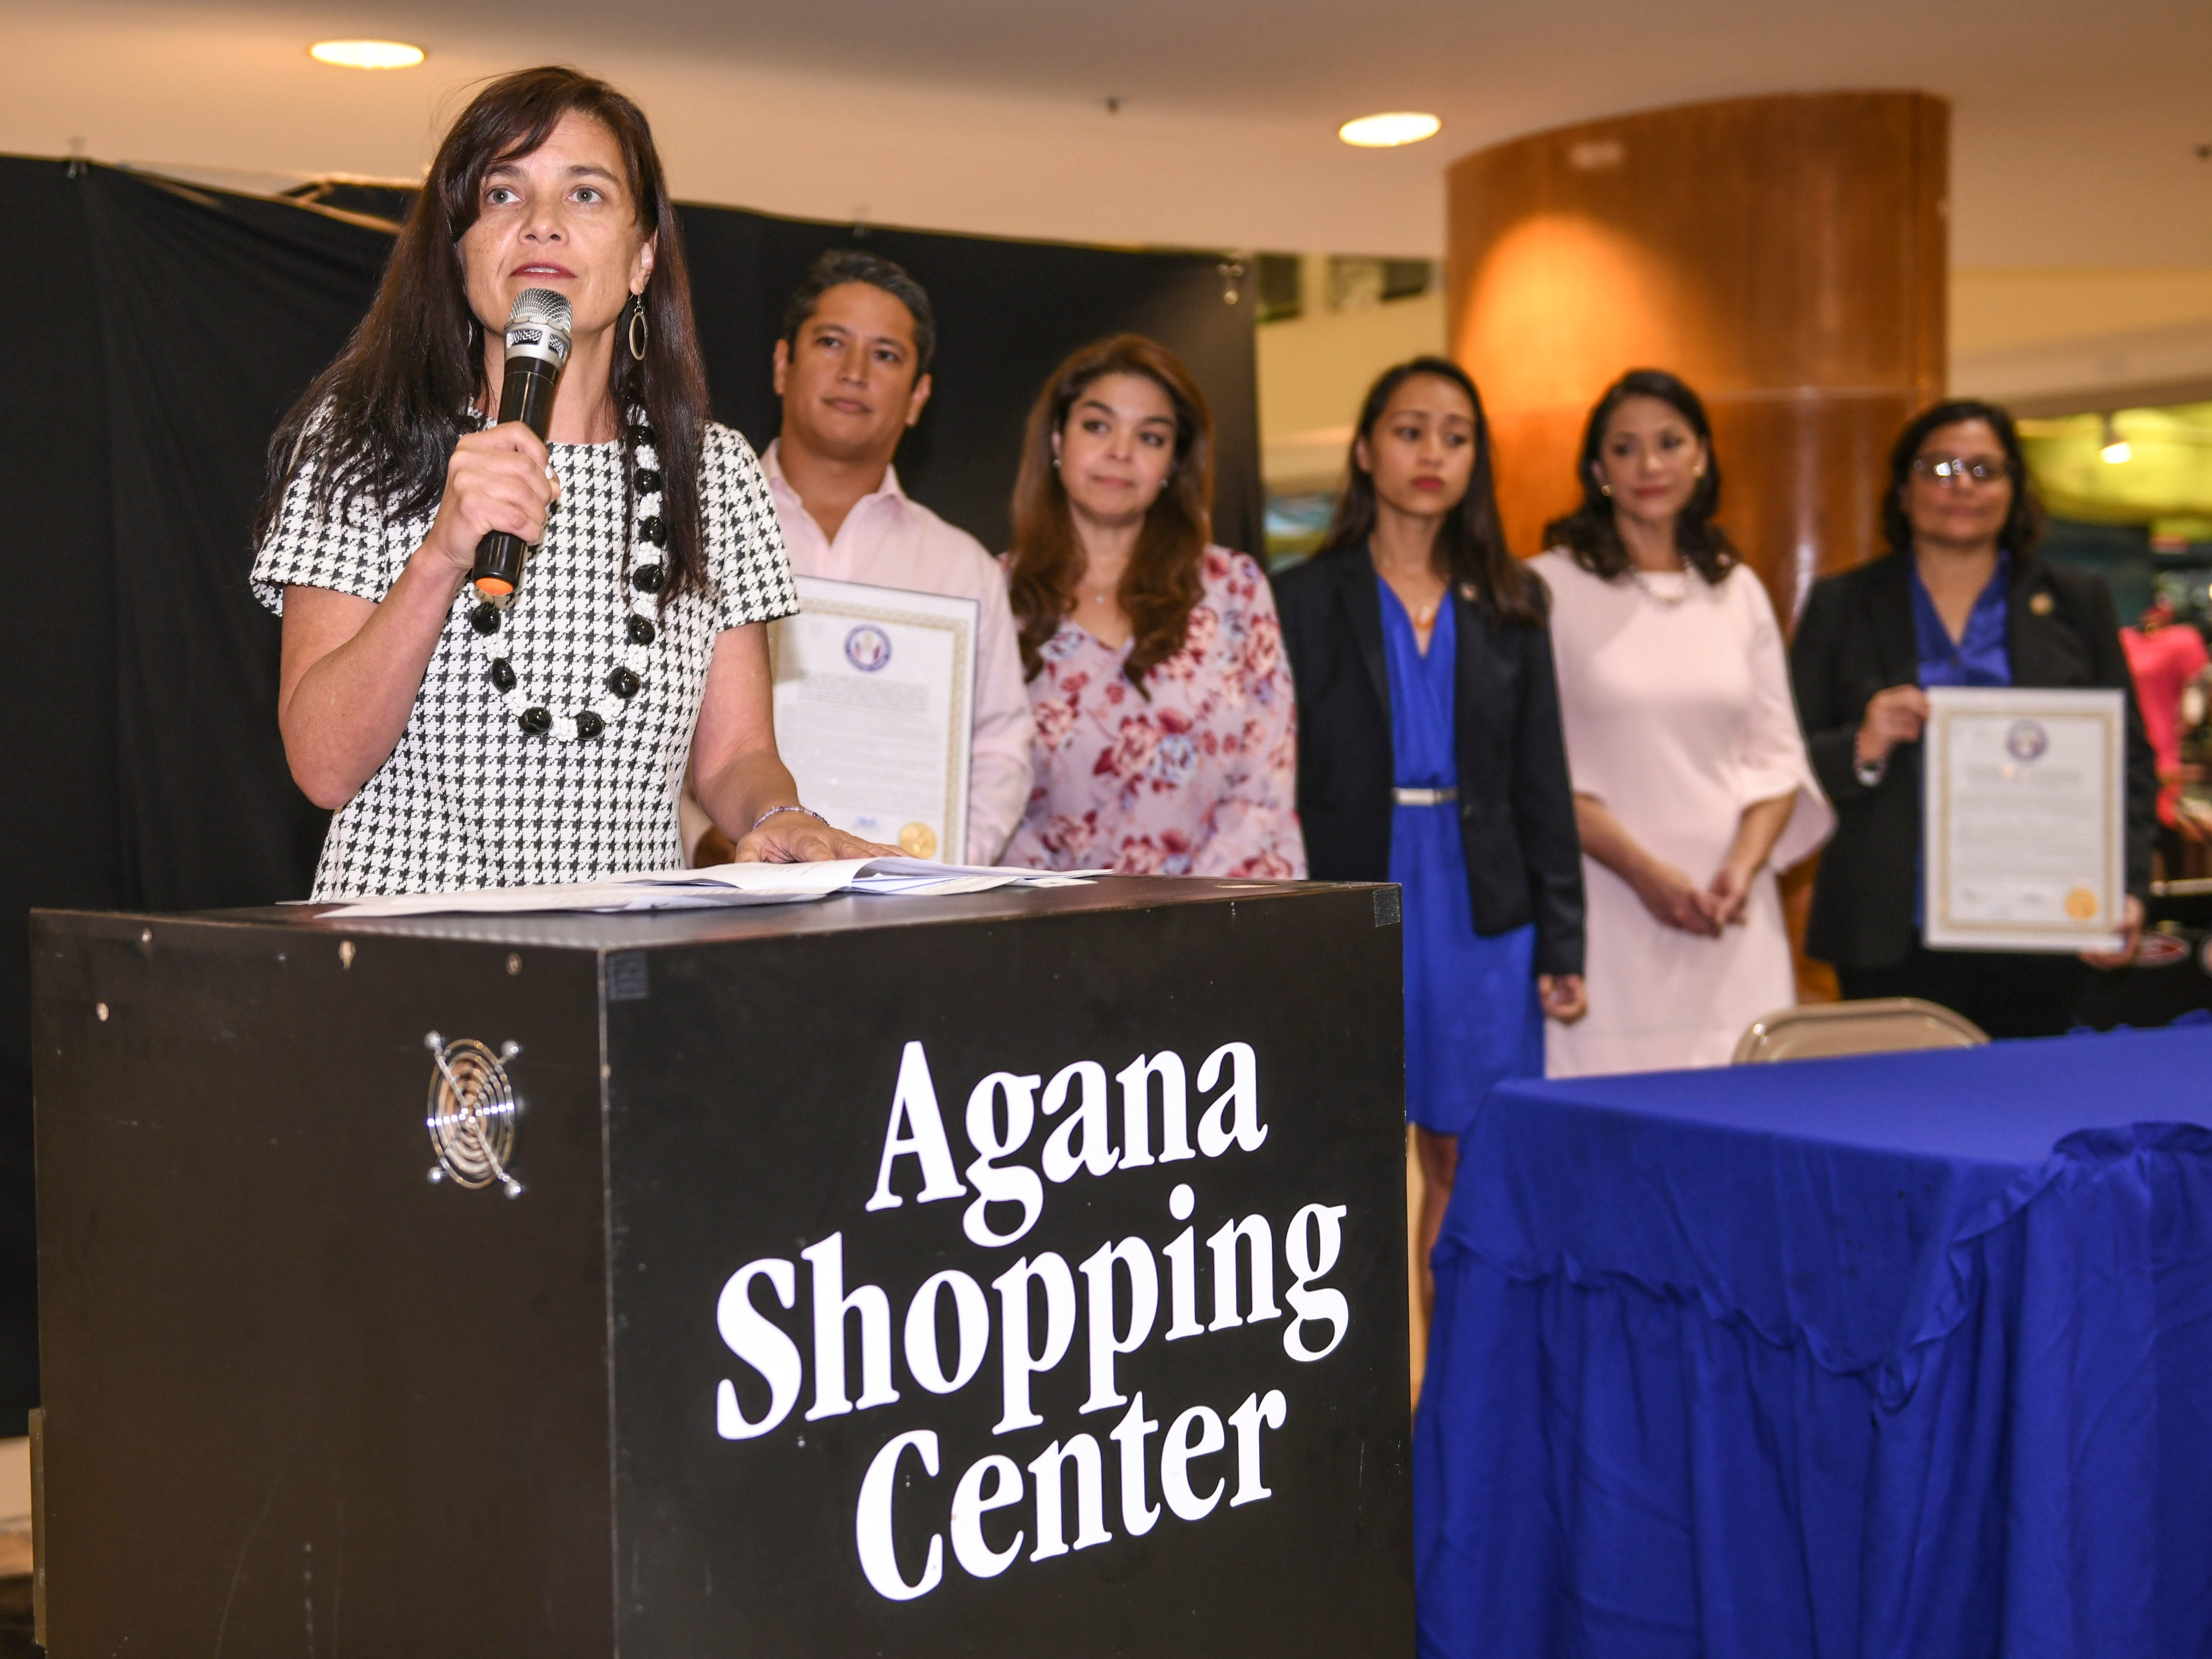 Sen. Therese Terlaje and other members of the 35th Guam Legislature prepare to present two resolutions, in support and appreciation of advocates working to alleviate incidences of violence, during the National Slavery and Human Trafficking Prevention Month and National Stalking Awareness Month Outreach Fair at the Agana Shopping Center on Saturday, Jan. 19, 2019.